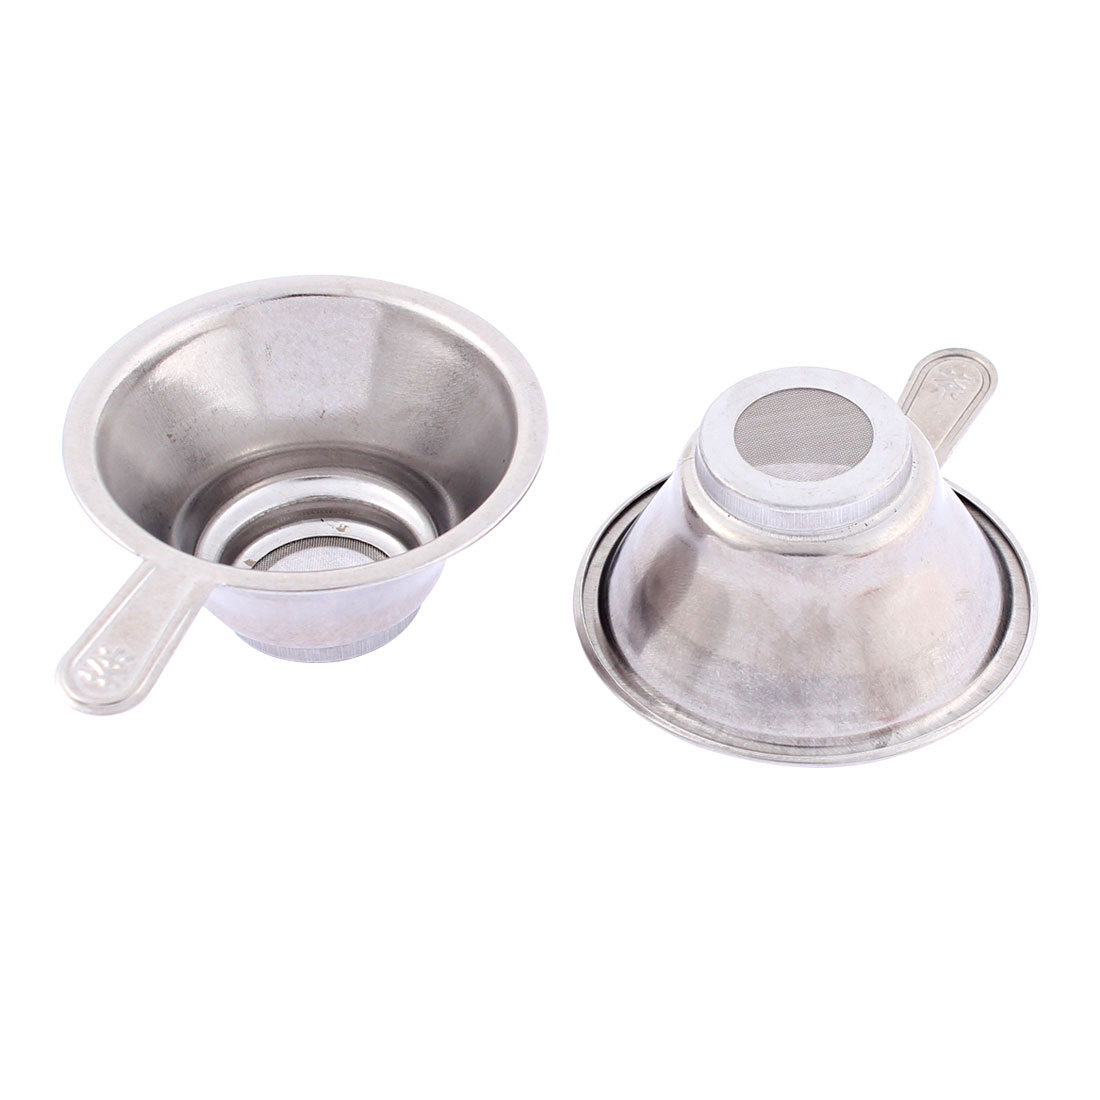 Home Stainless Steel Mesh Bottom Tea Bowl Strainer 67mm Dia 2 Pcs